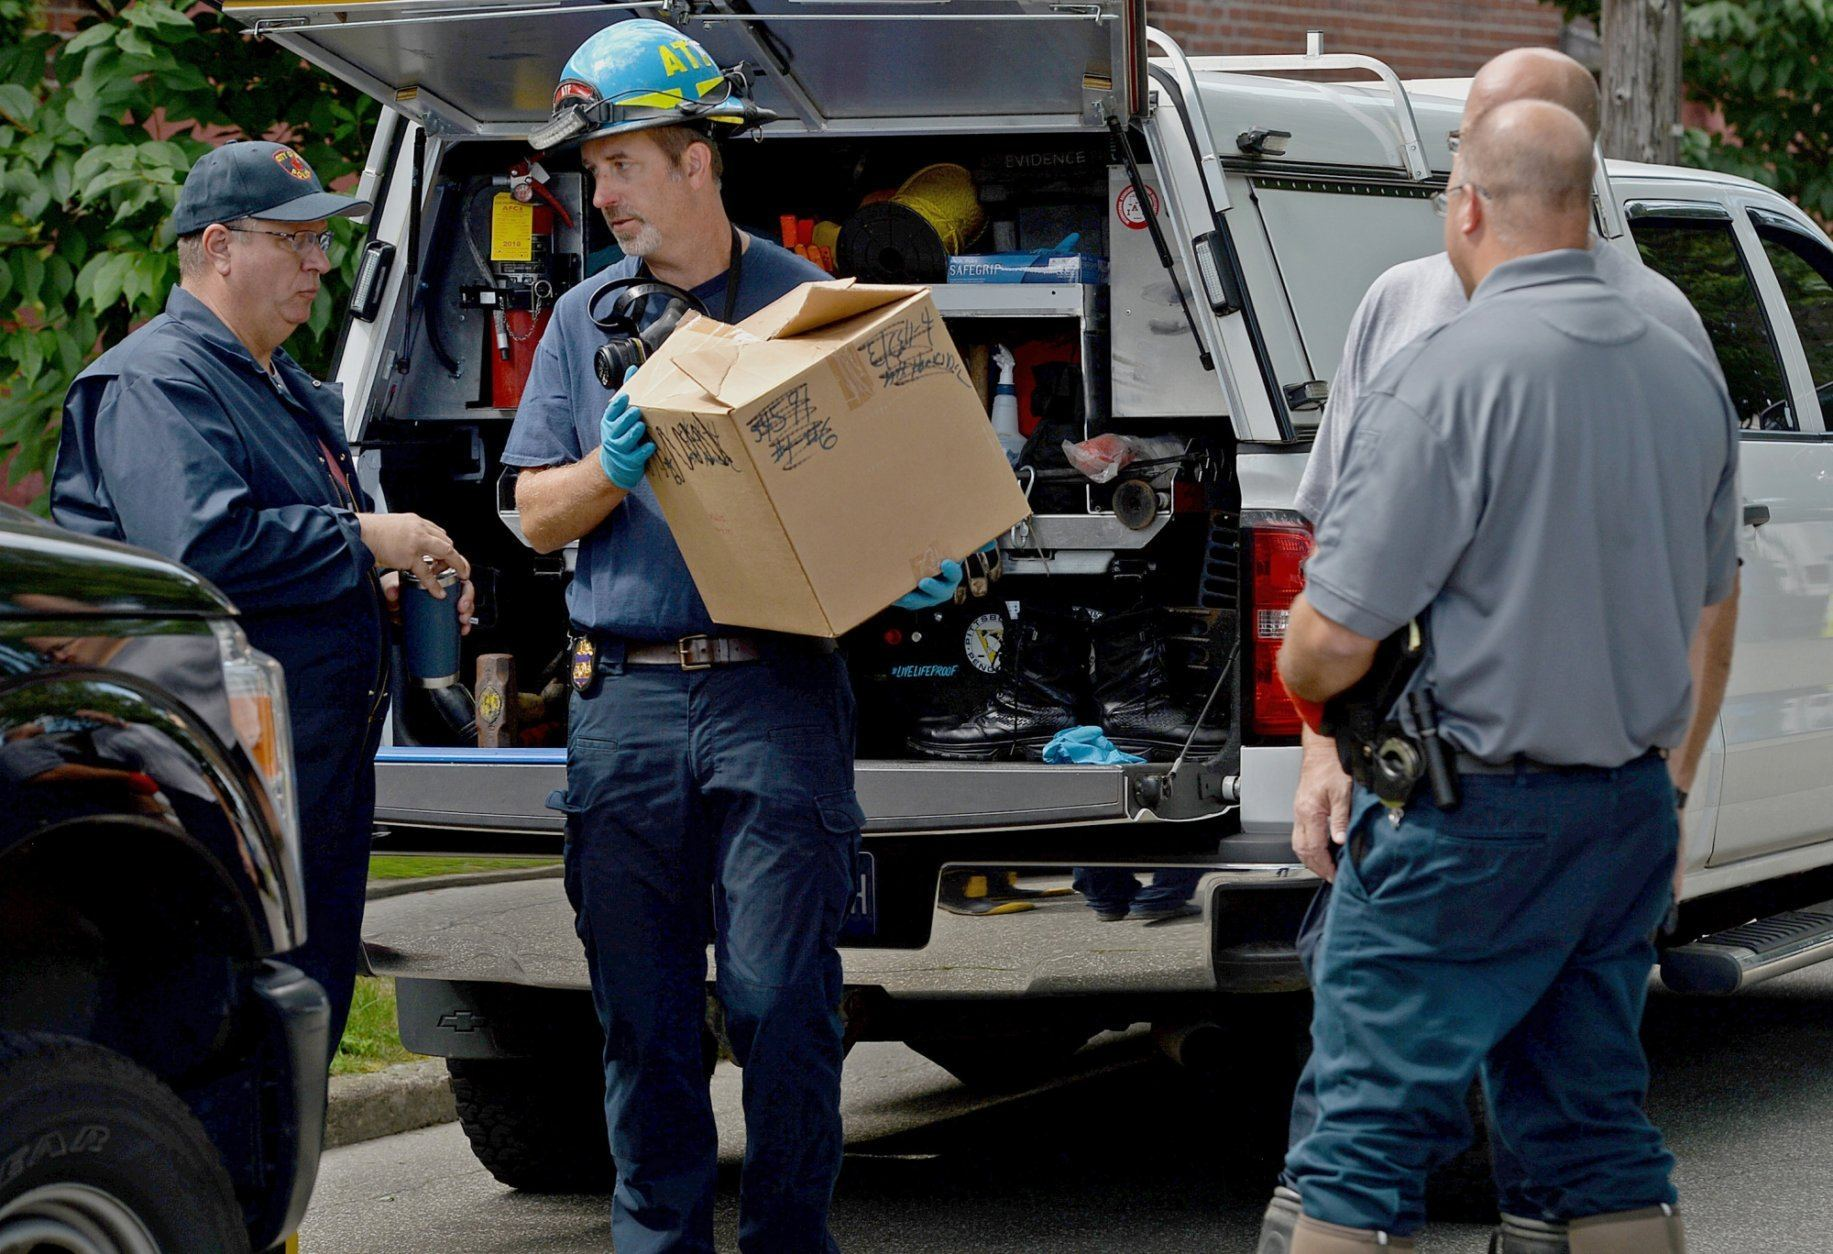 Erie Bureau of Police Det. Dave Walker, left, and Matthew Regentin, center, a fire investigator with the federal Bureau of Alcohol, Tobacco and Firearms and Explosives, based in Pittsburgh, are shown Monday, Aug. 12, 2019, with a box of evidence taken from the scene of a fatal fire at a home child care center on W. 11th Street in Erie, Pa. Investigators spent several hours at the site, where five children died and at least two others were injured in the fire the day before. (Christopher Millette/Erie Times-News via AP)